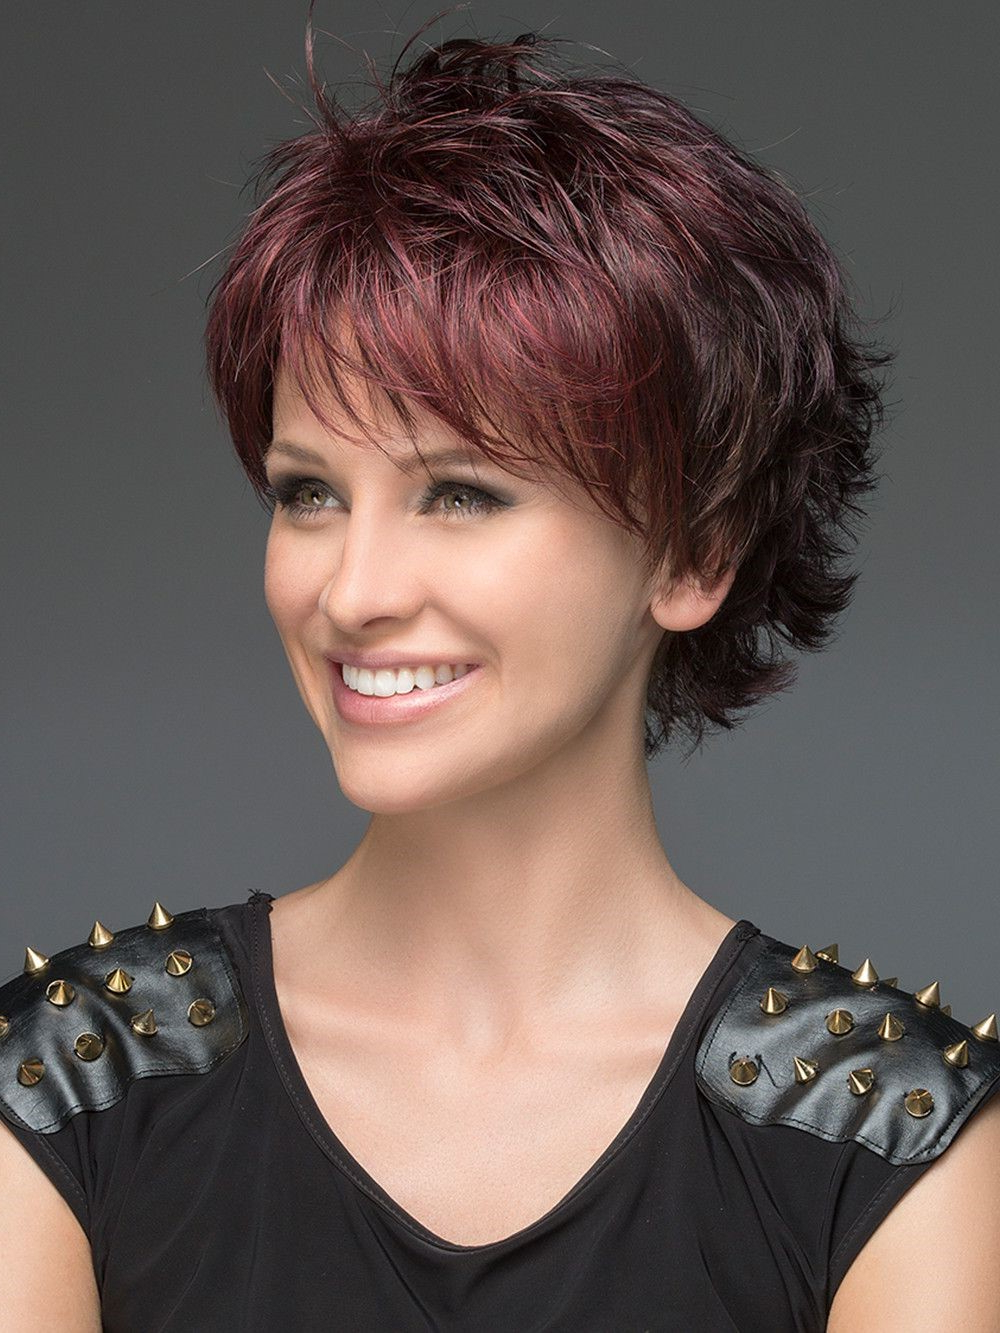 Two Ways To Wear A Short Shag Haircut With Short Shag Haircuts With Sass (View 4 of 20)